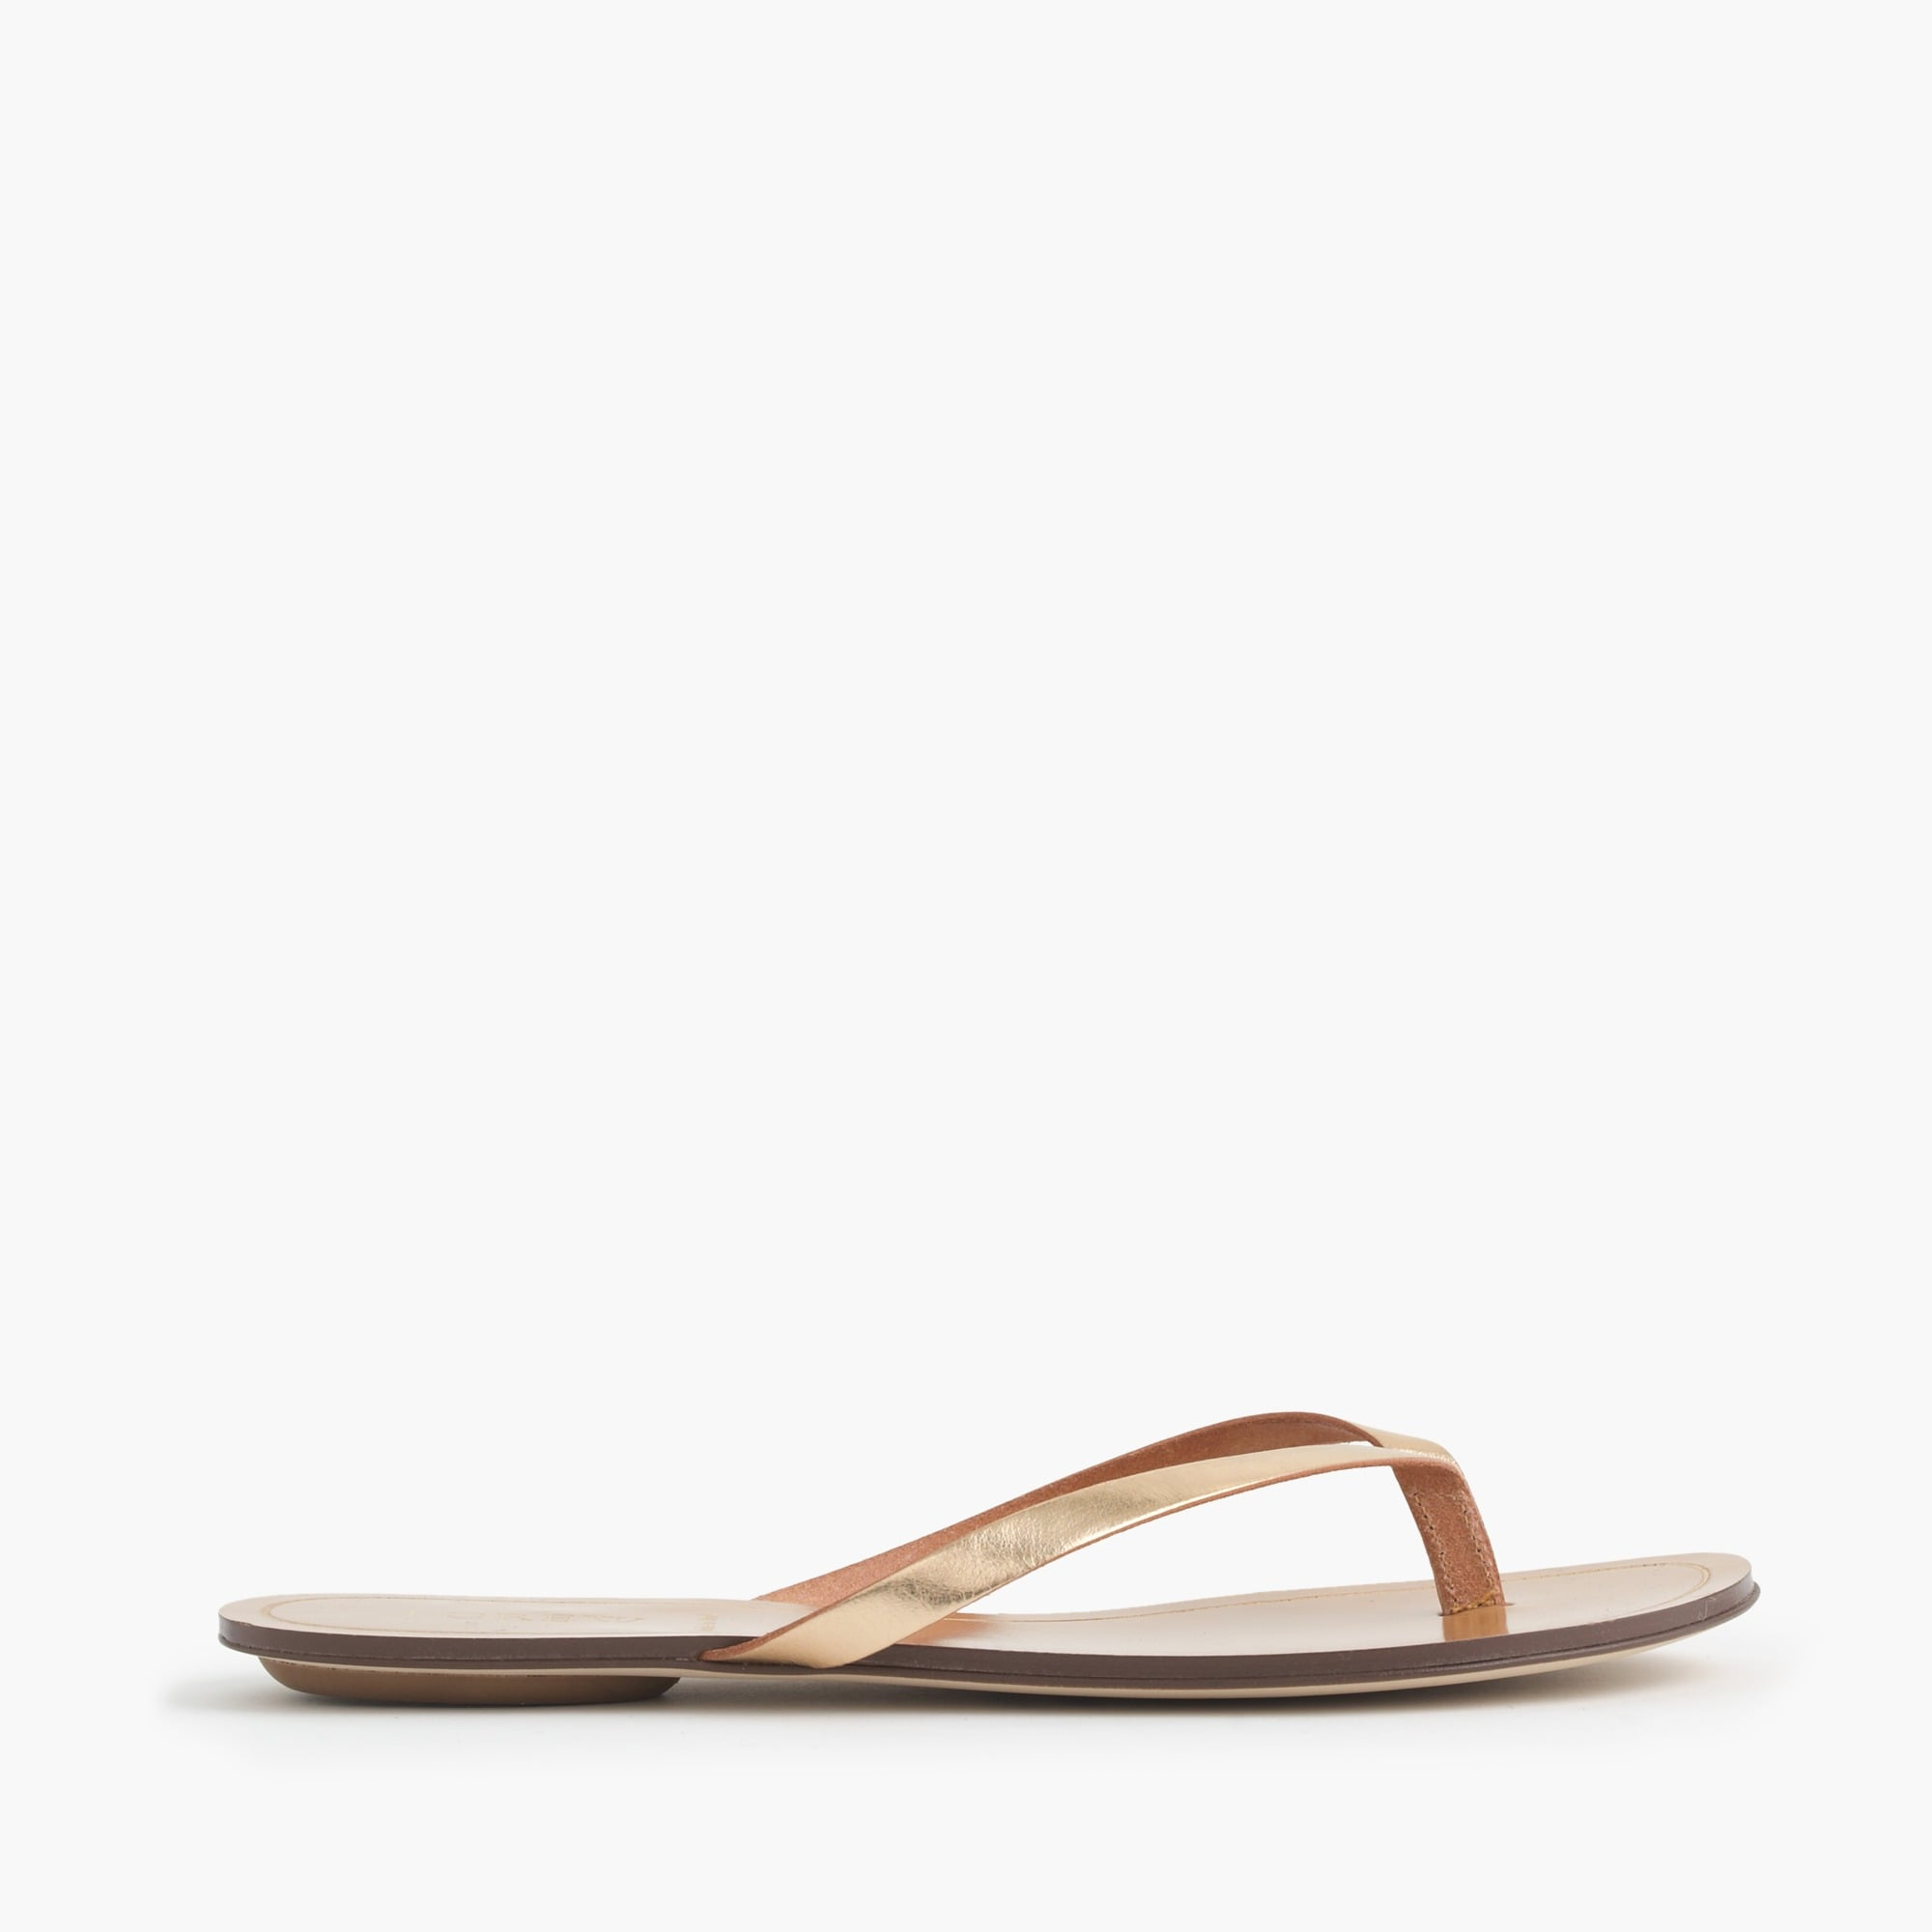 rio metallic sandals : women's sandals